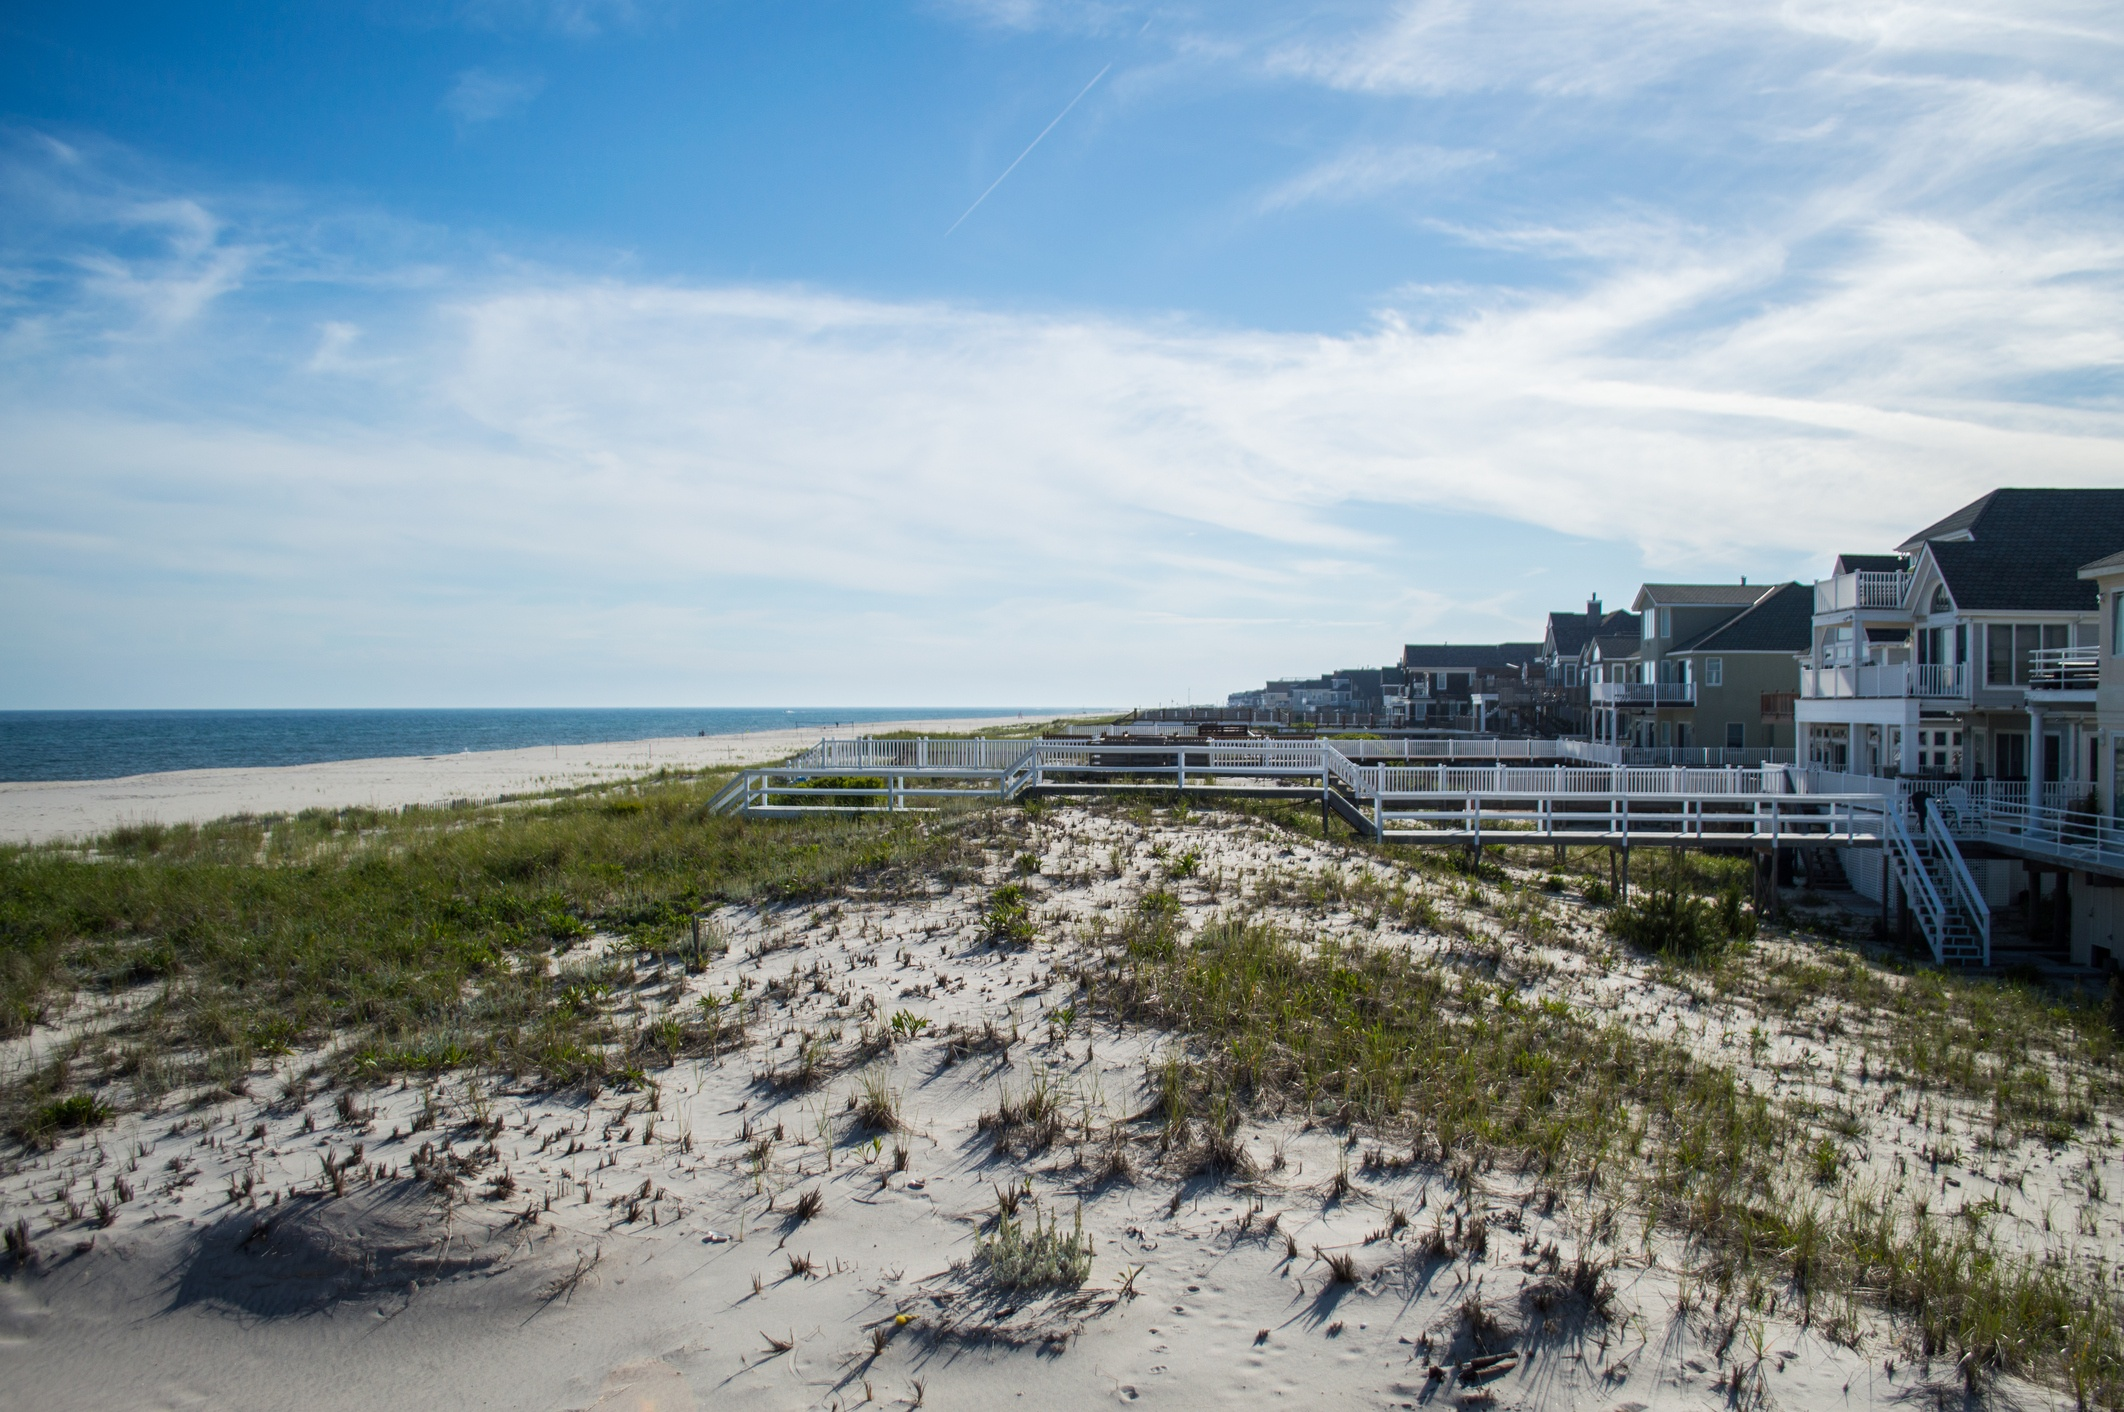 Beach mansions in the Hamptons, New York City, USA